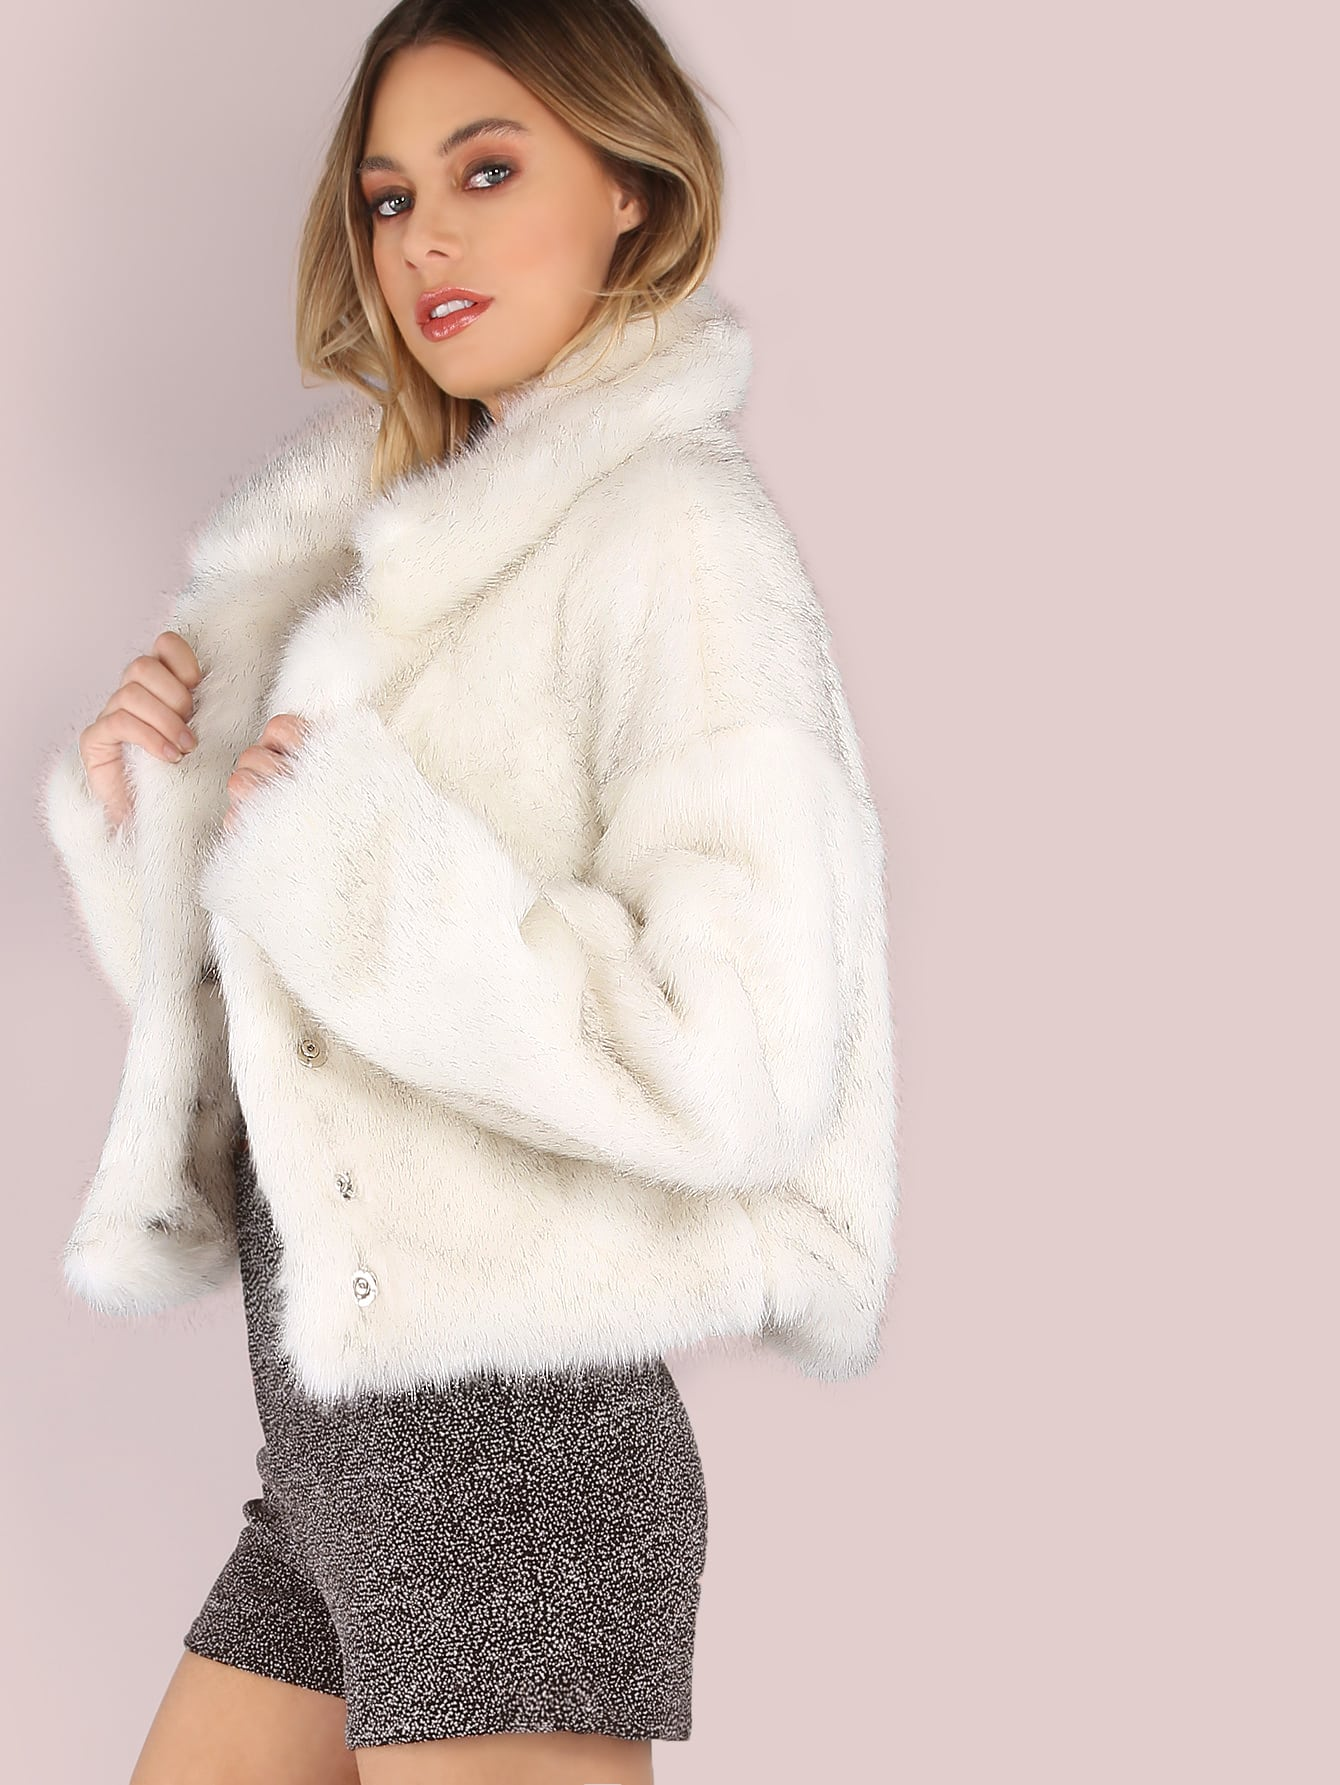 White Stand Collar Open Front Faux Fur Coat -SheIn(Sheinside)